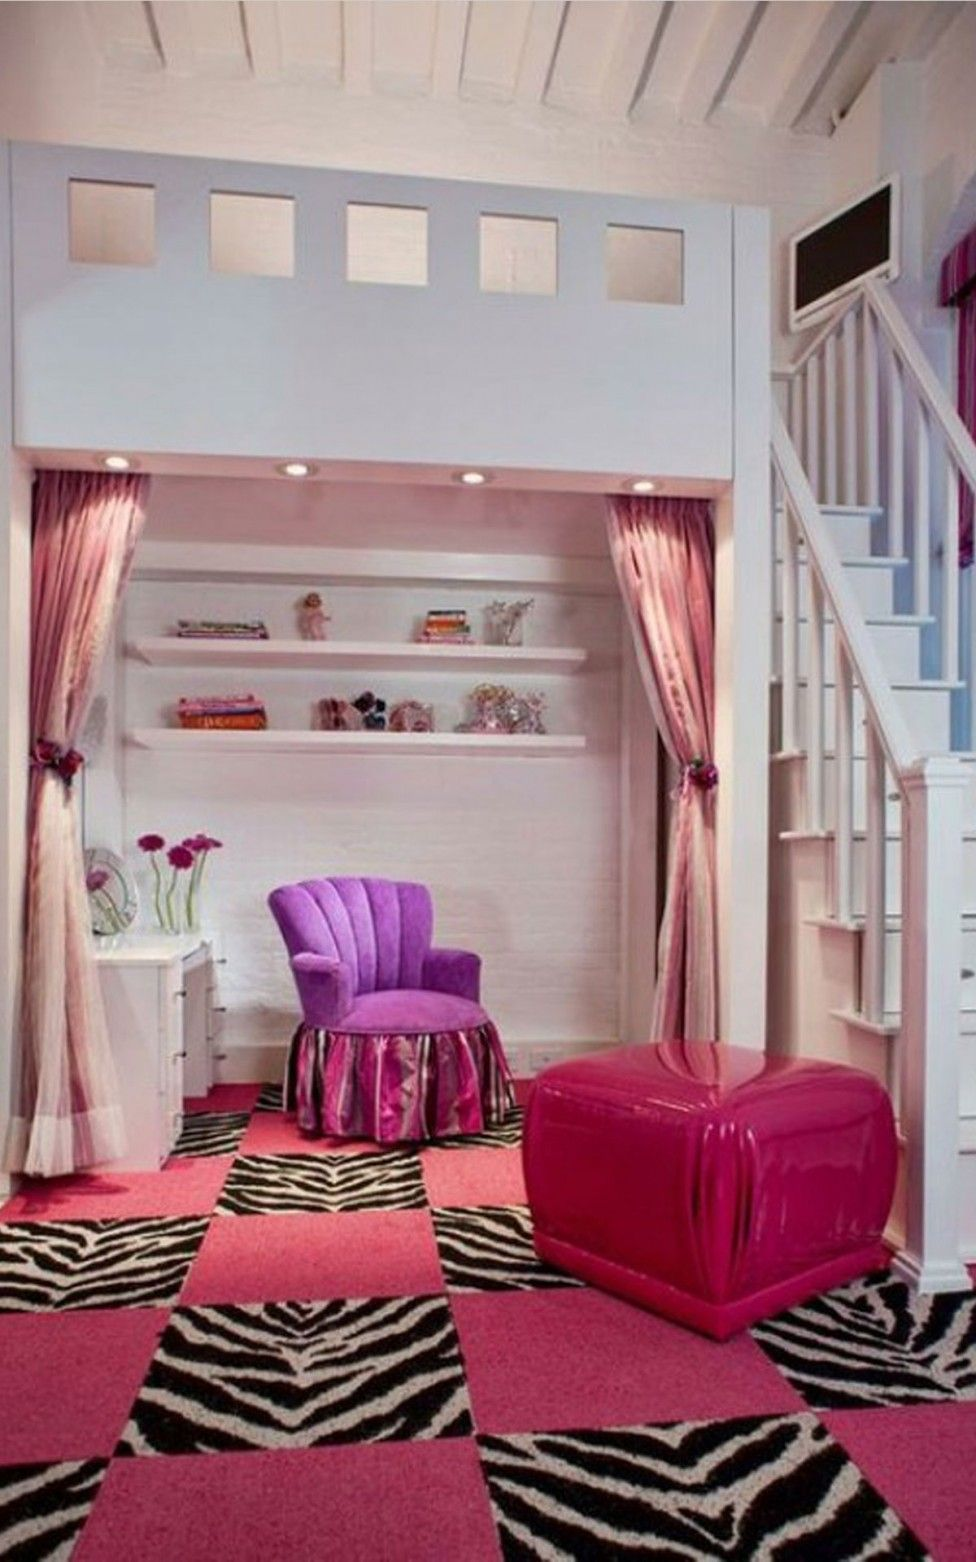 Small Room Ideas for Girls with Cute Color Bedroom 22 ... on Small Room Ideas For Girls  id=44418